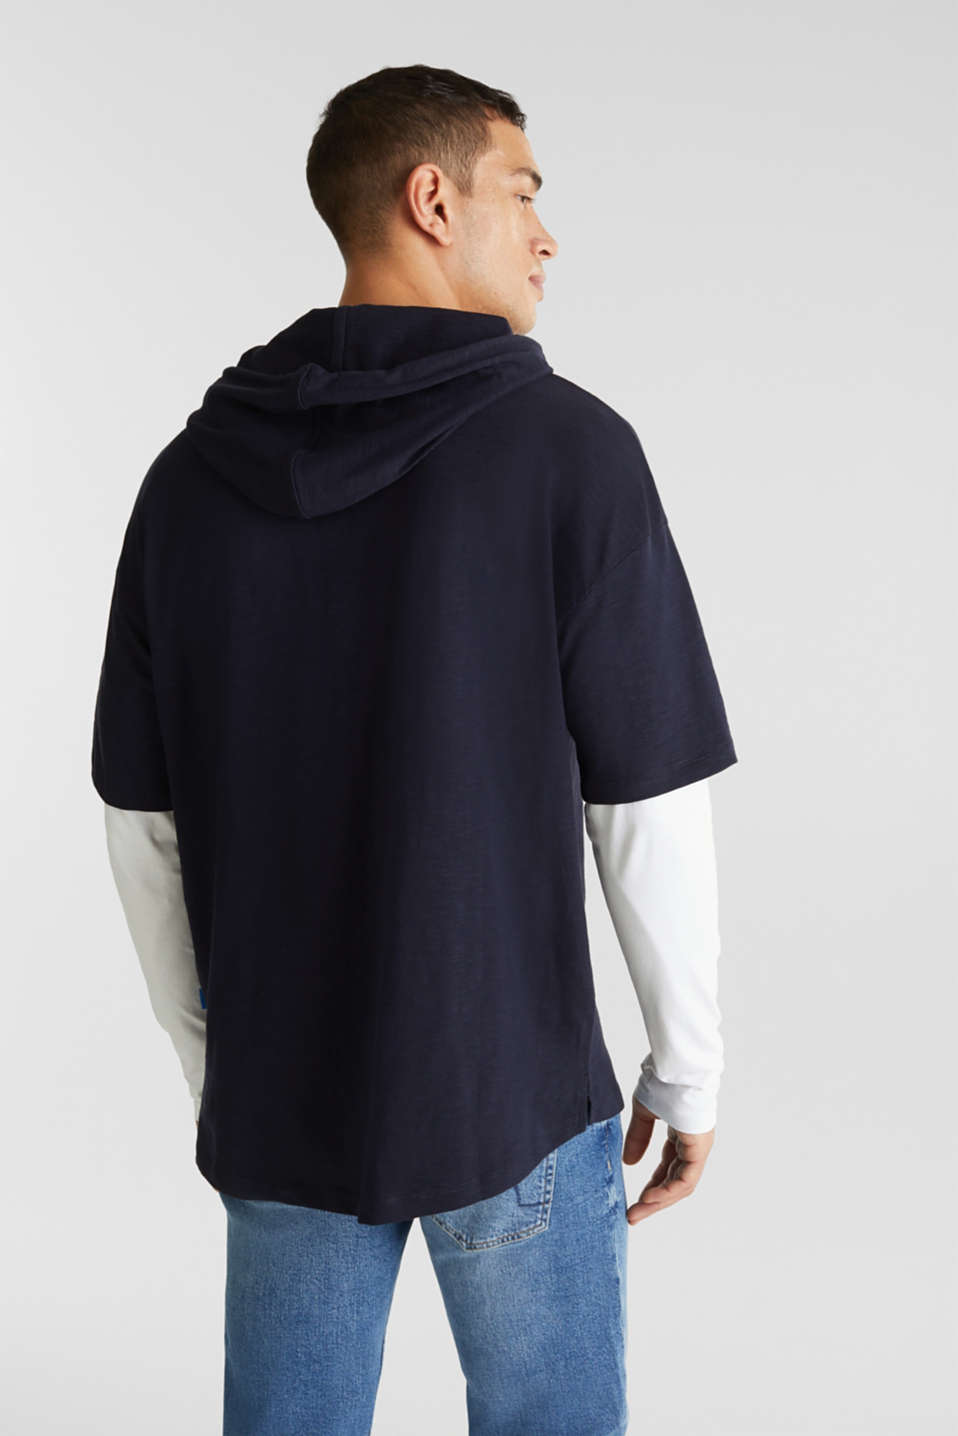 Layered jersey top with a hood, 100% cotton, NAVY 2, detail image number 3